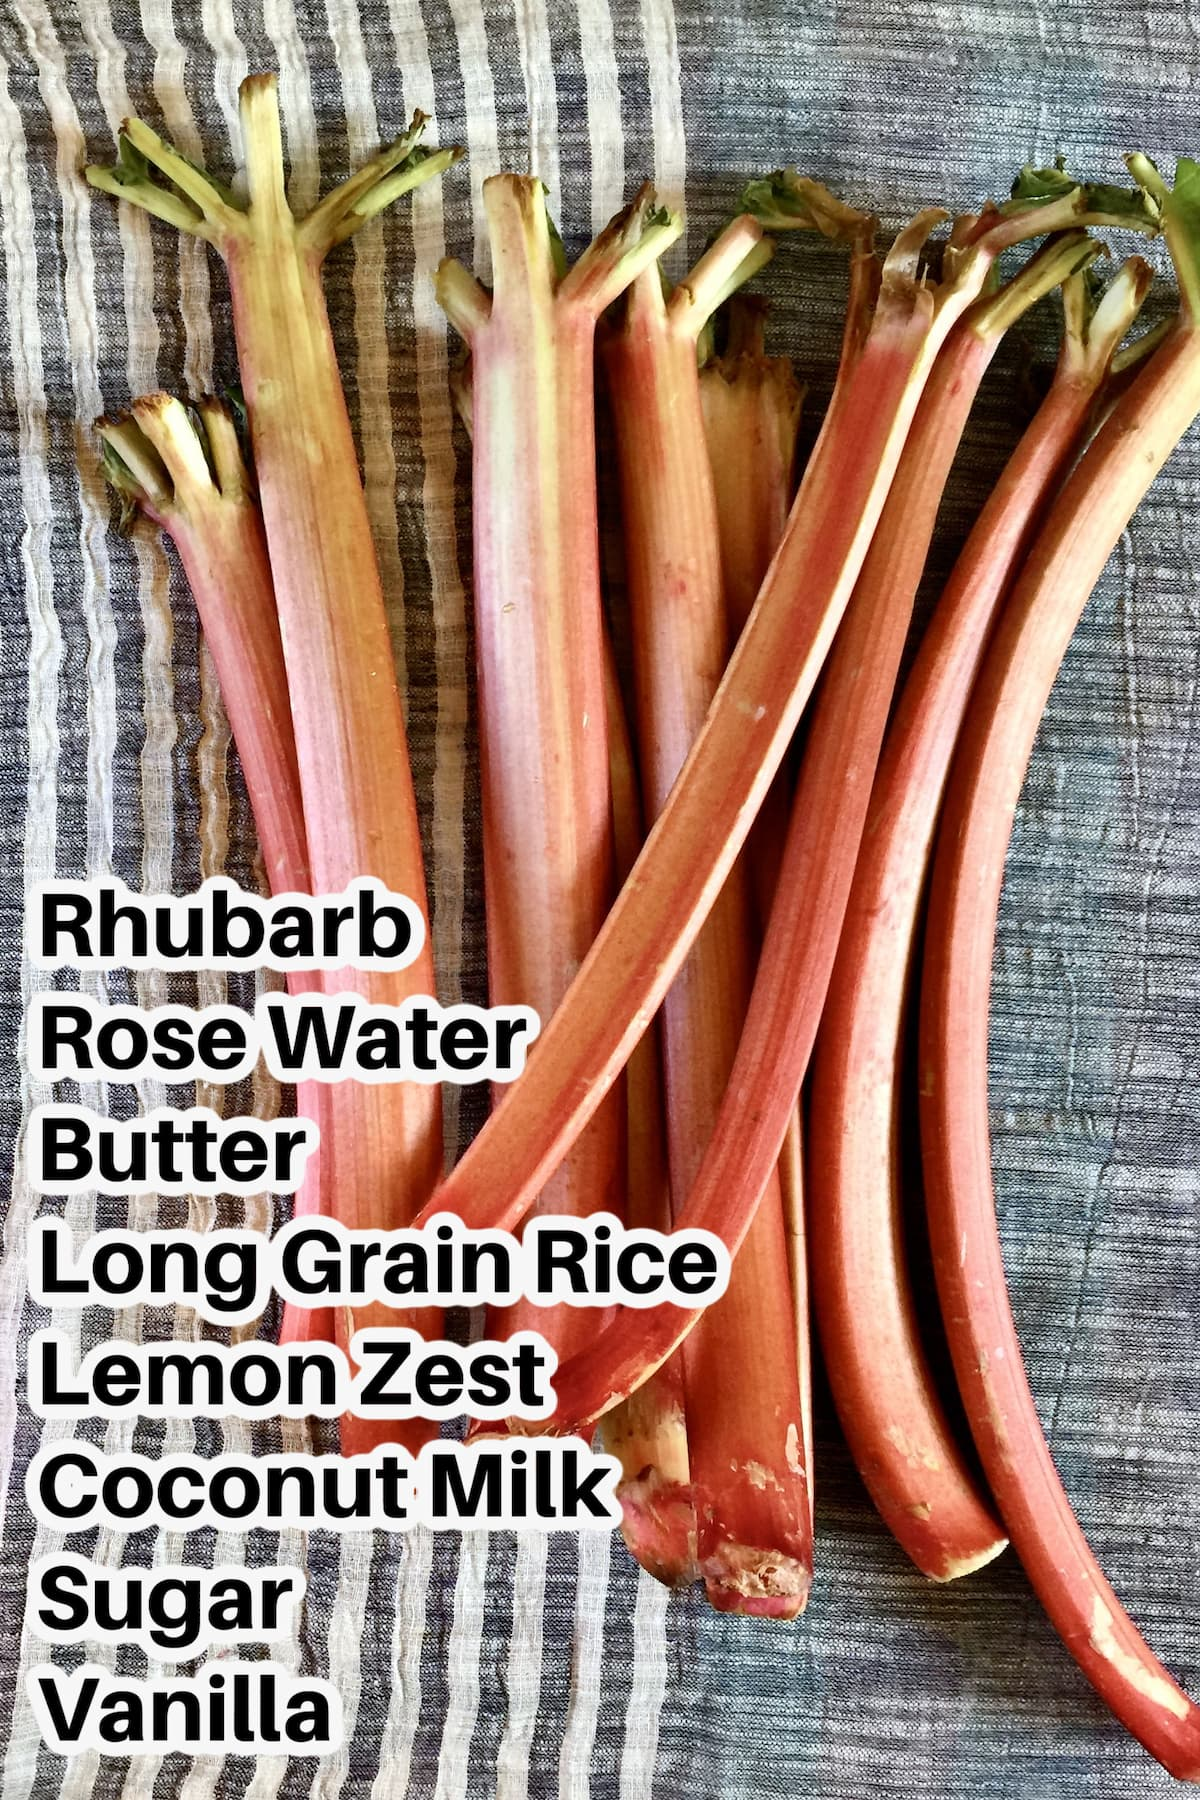 stalks of rhubarb on a gray background with text overlay of ingredients.